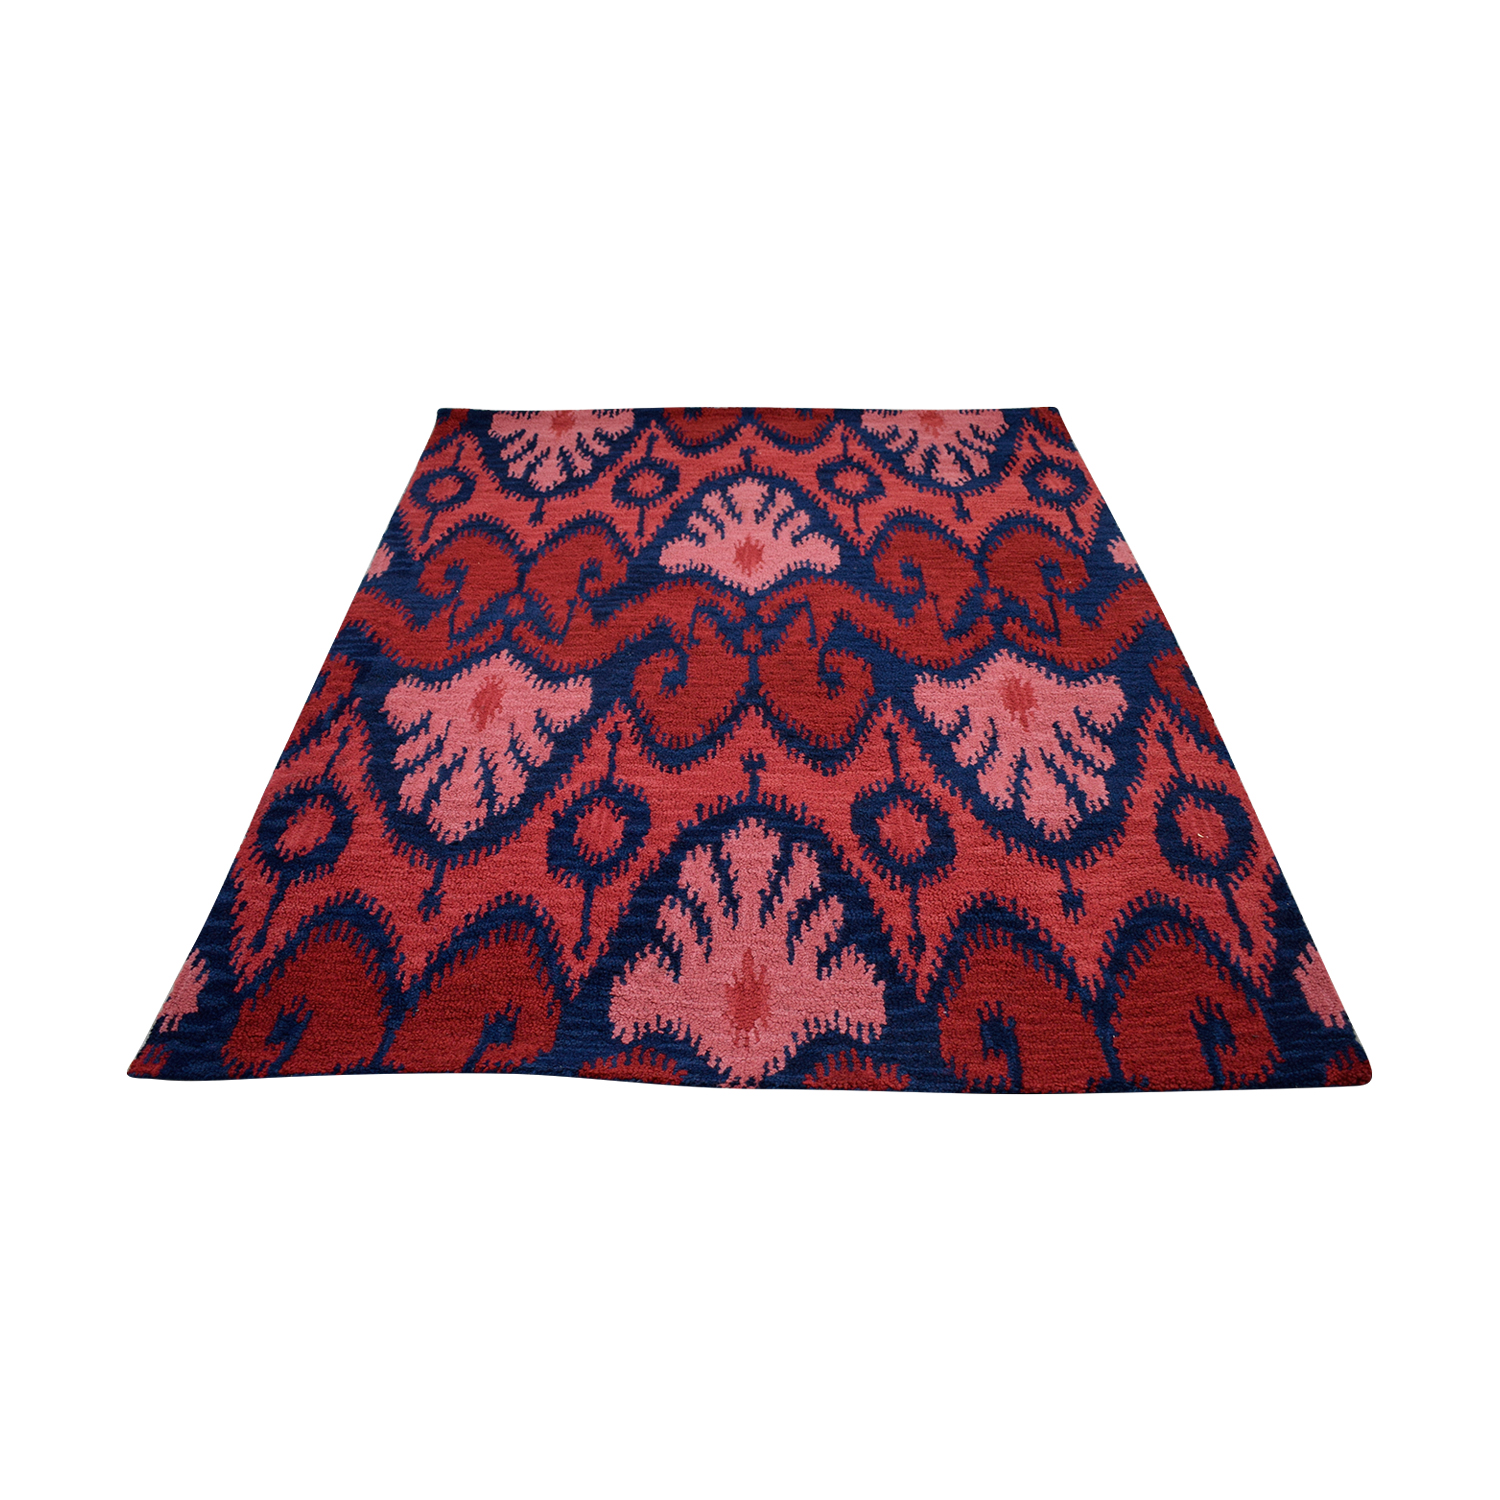 Ikat Wool Red and Navy Rug